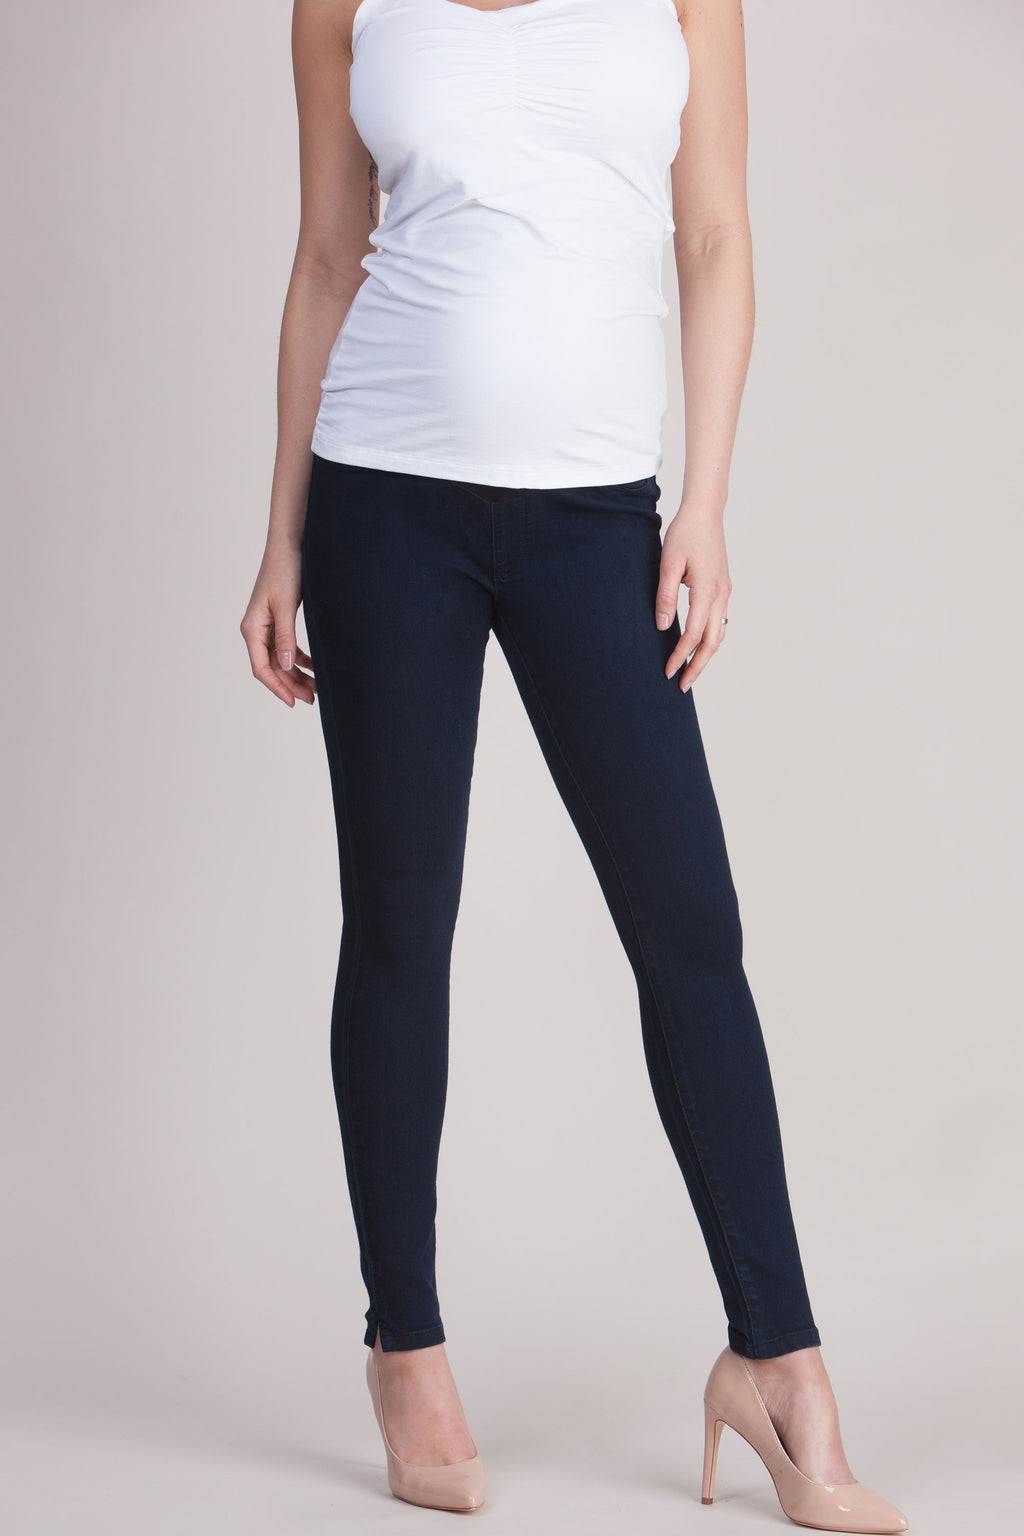 Seraphine Elis Skinny Over Bump Maternity Jeans - Seven Women Maternity